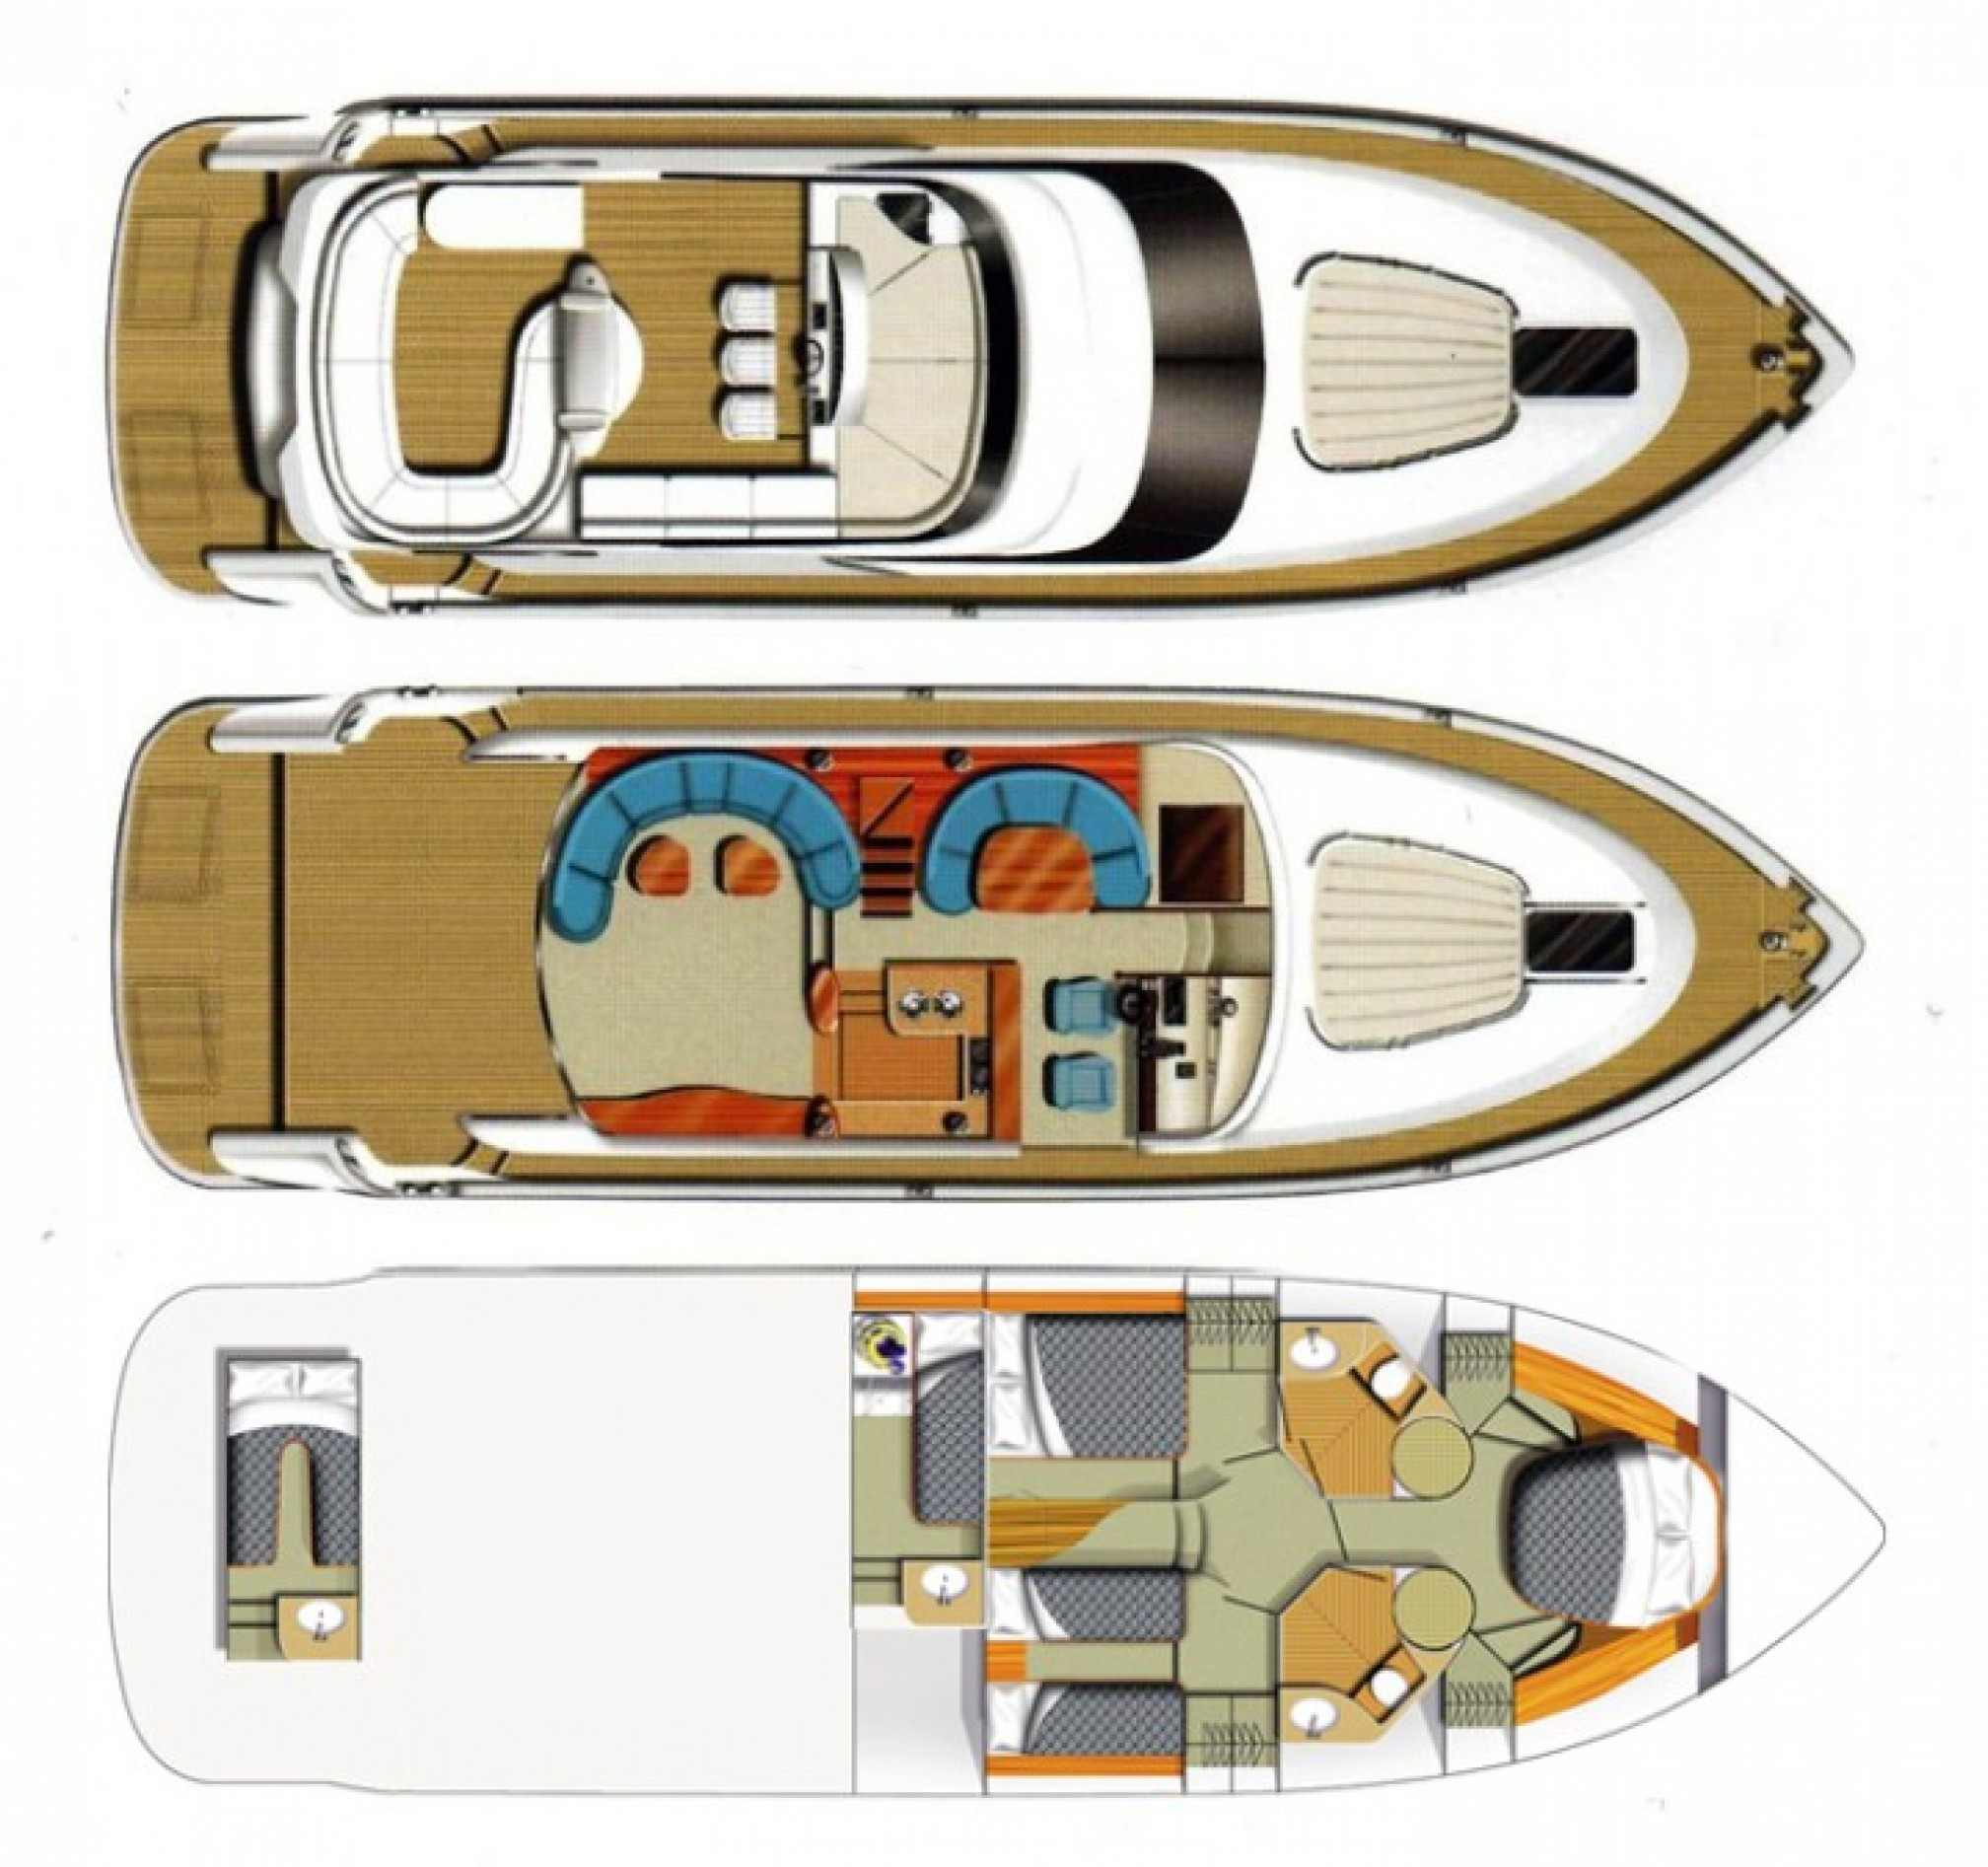 Fairline Squadron 58 yacht charter layout